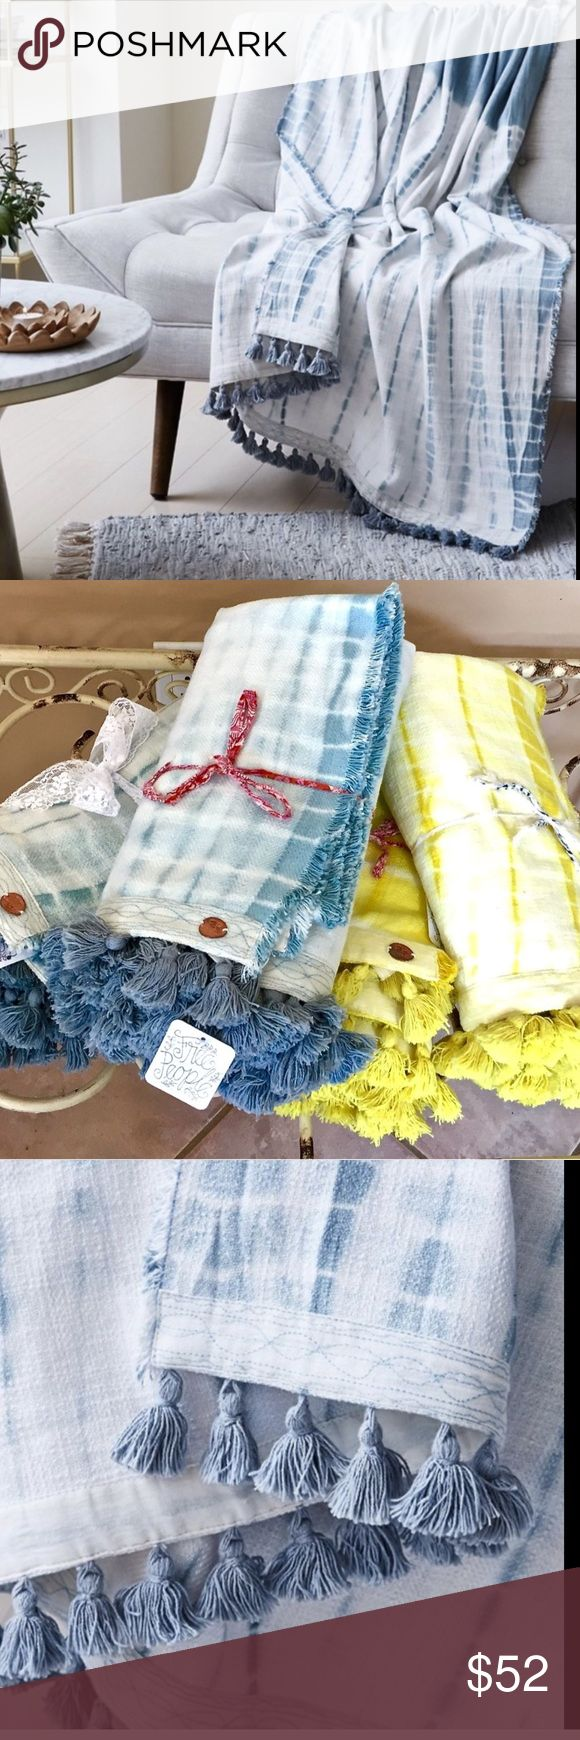 "Free People blue white Large Beach Towel Blanket Free People blue white Tie Dye Extra Large Beach Towel Blanket Throw Tassel Trim  Hand dyed super soft cotton beach towel / blanket / throw with tassel edging New With Tags    * due to the hand dyed technique, each towel will be slightly different   100% cotton  42""W  x  62""L  Check out my other items! Be sure to add me to your favorites list! Free People Accessories Scarves & Wraps"